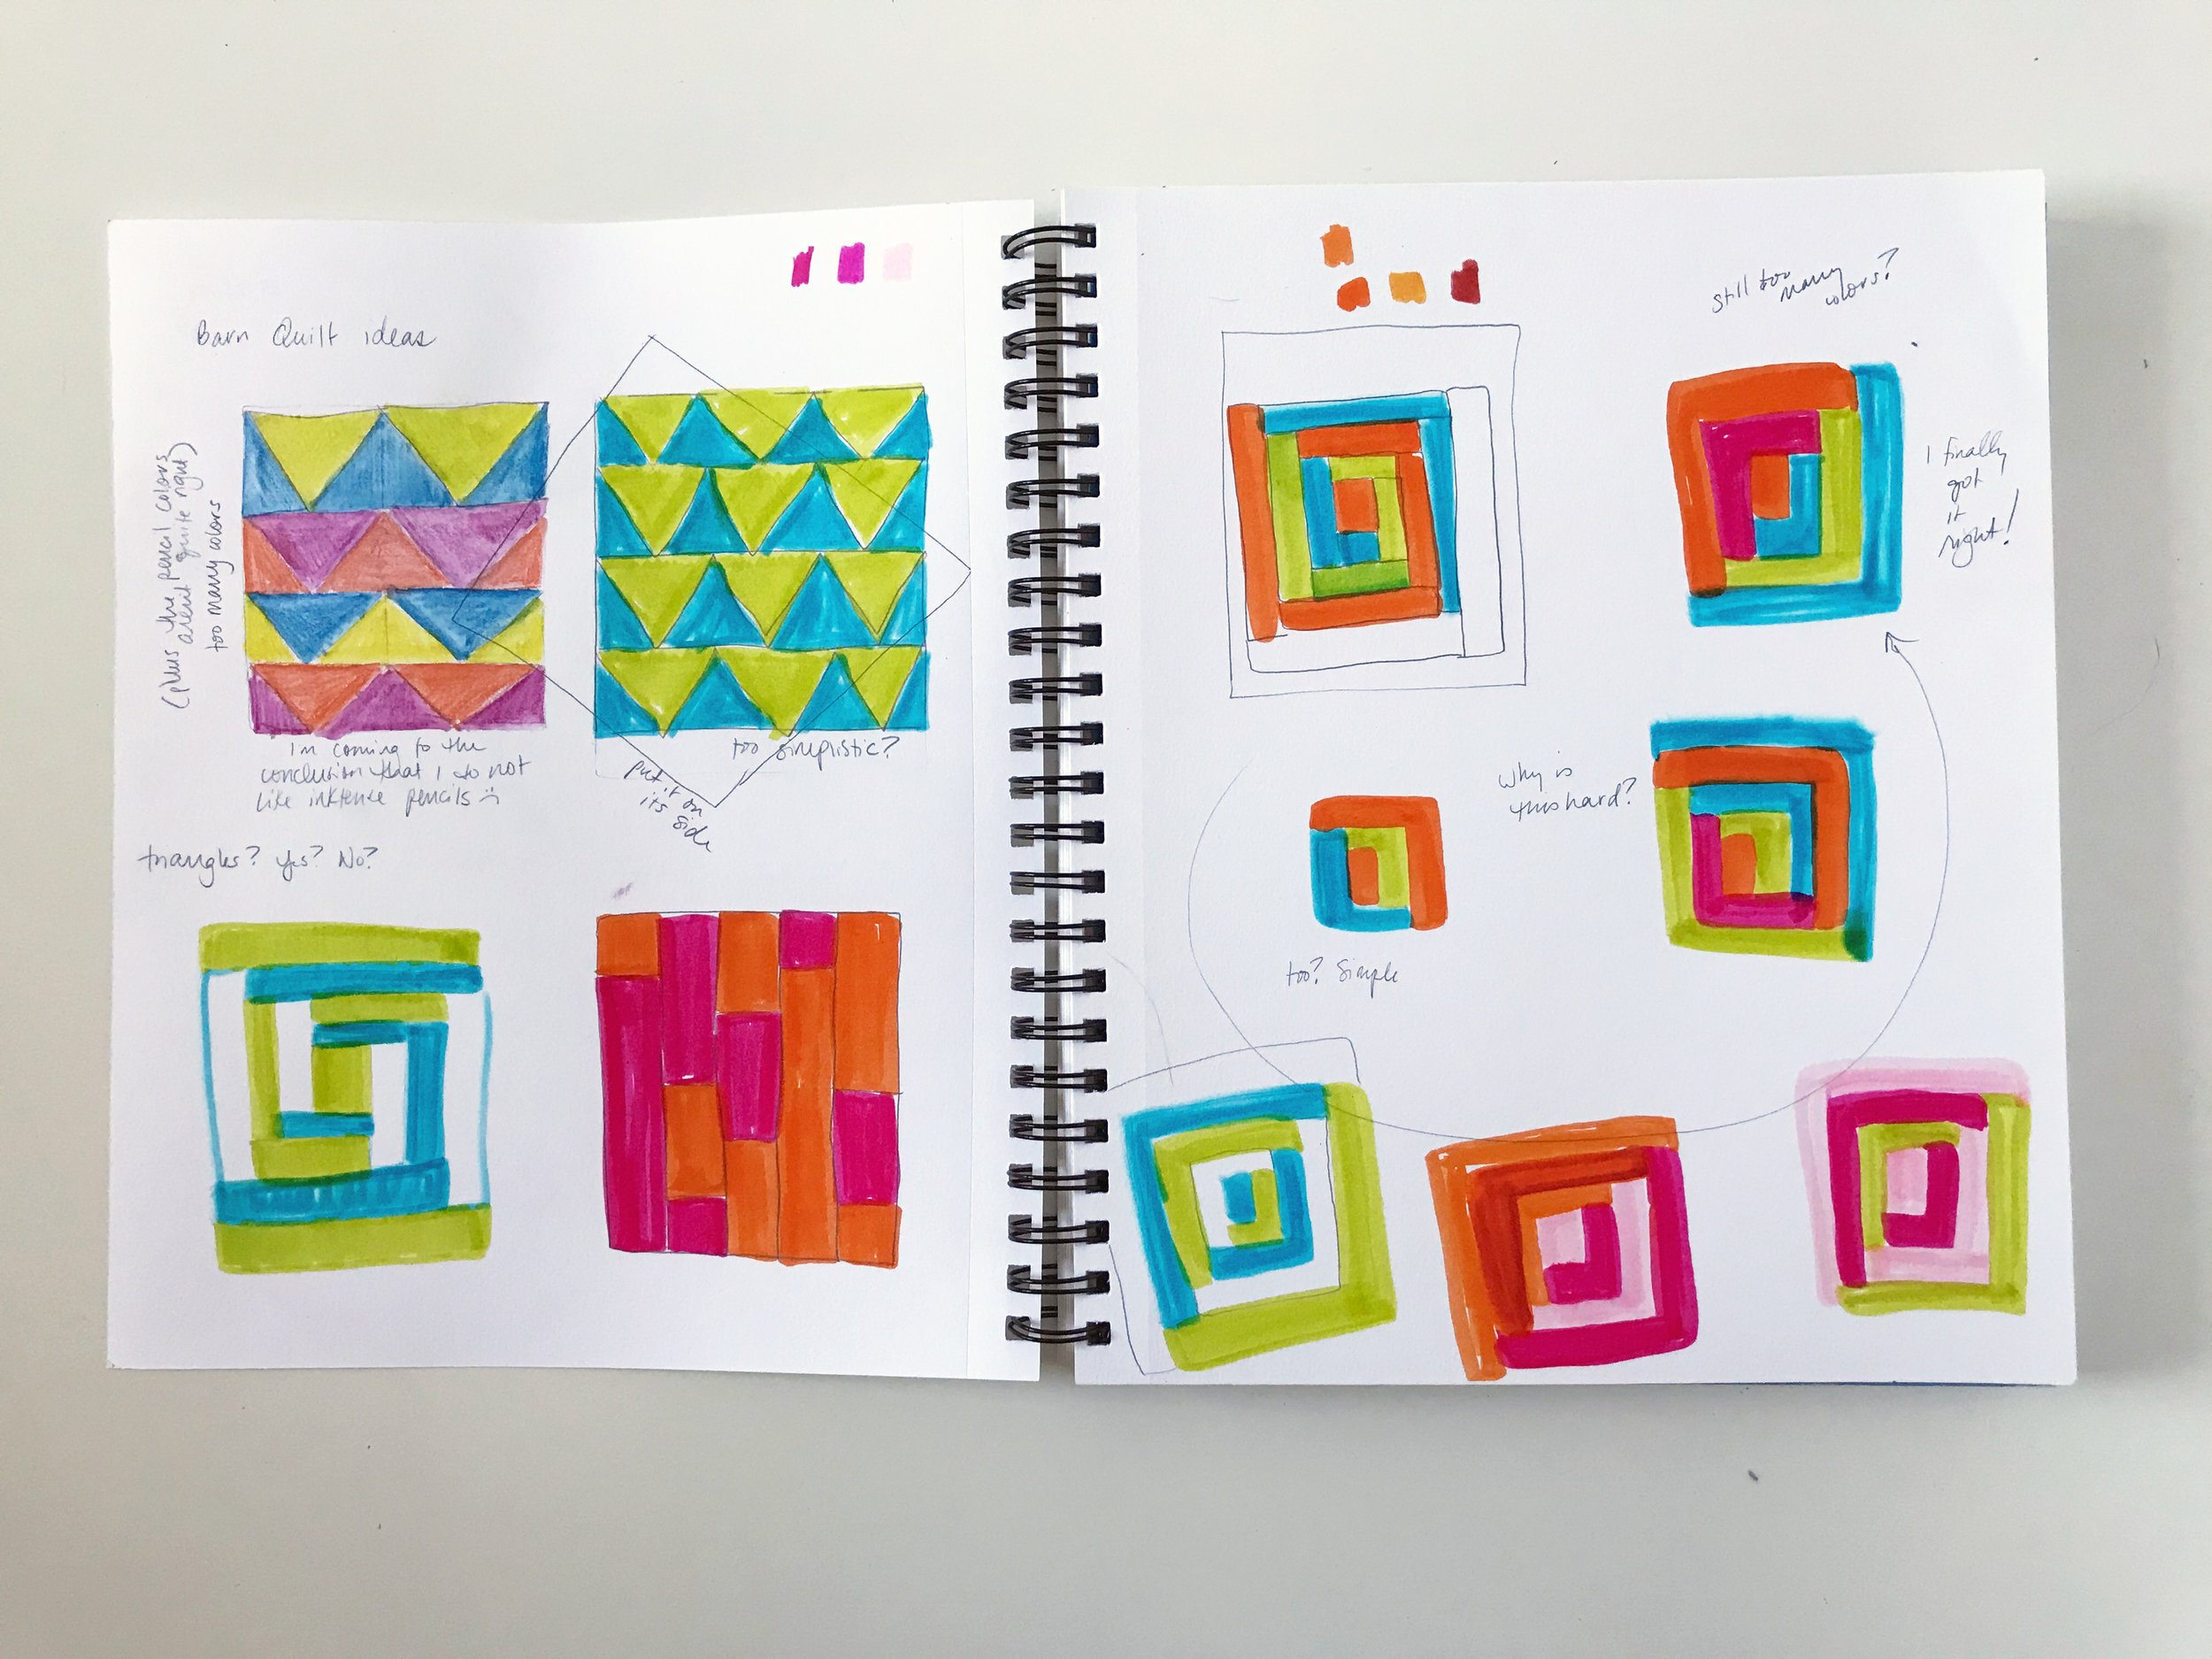 Using Markers to Brainstorm Barn Quilt Designs in My Sketchbook by Anne Butera of My Giant Strawberry